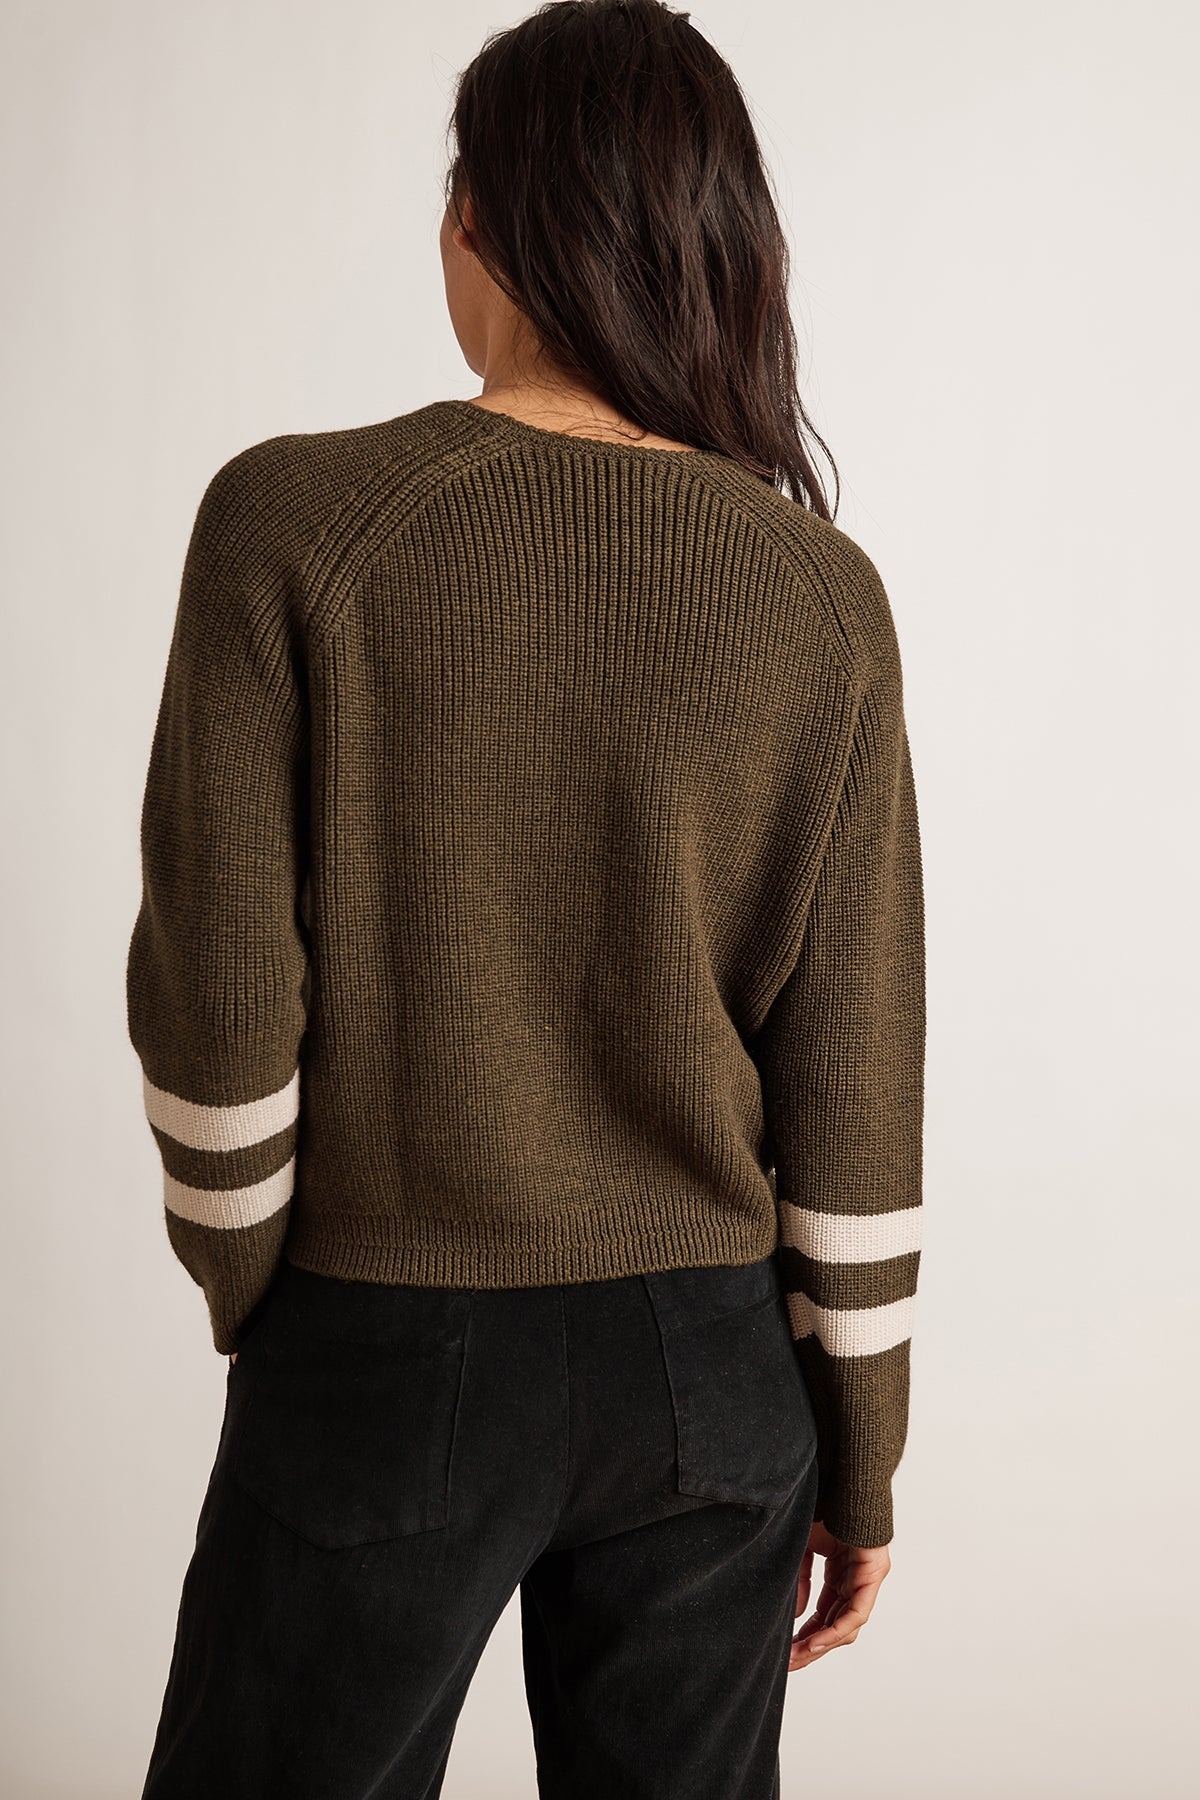 CHASEN ENGINEERED STITCHES RAGLAN SWEATER